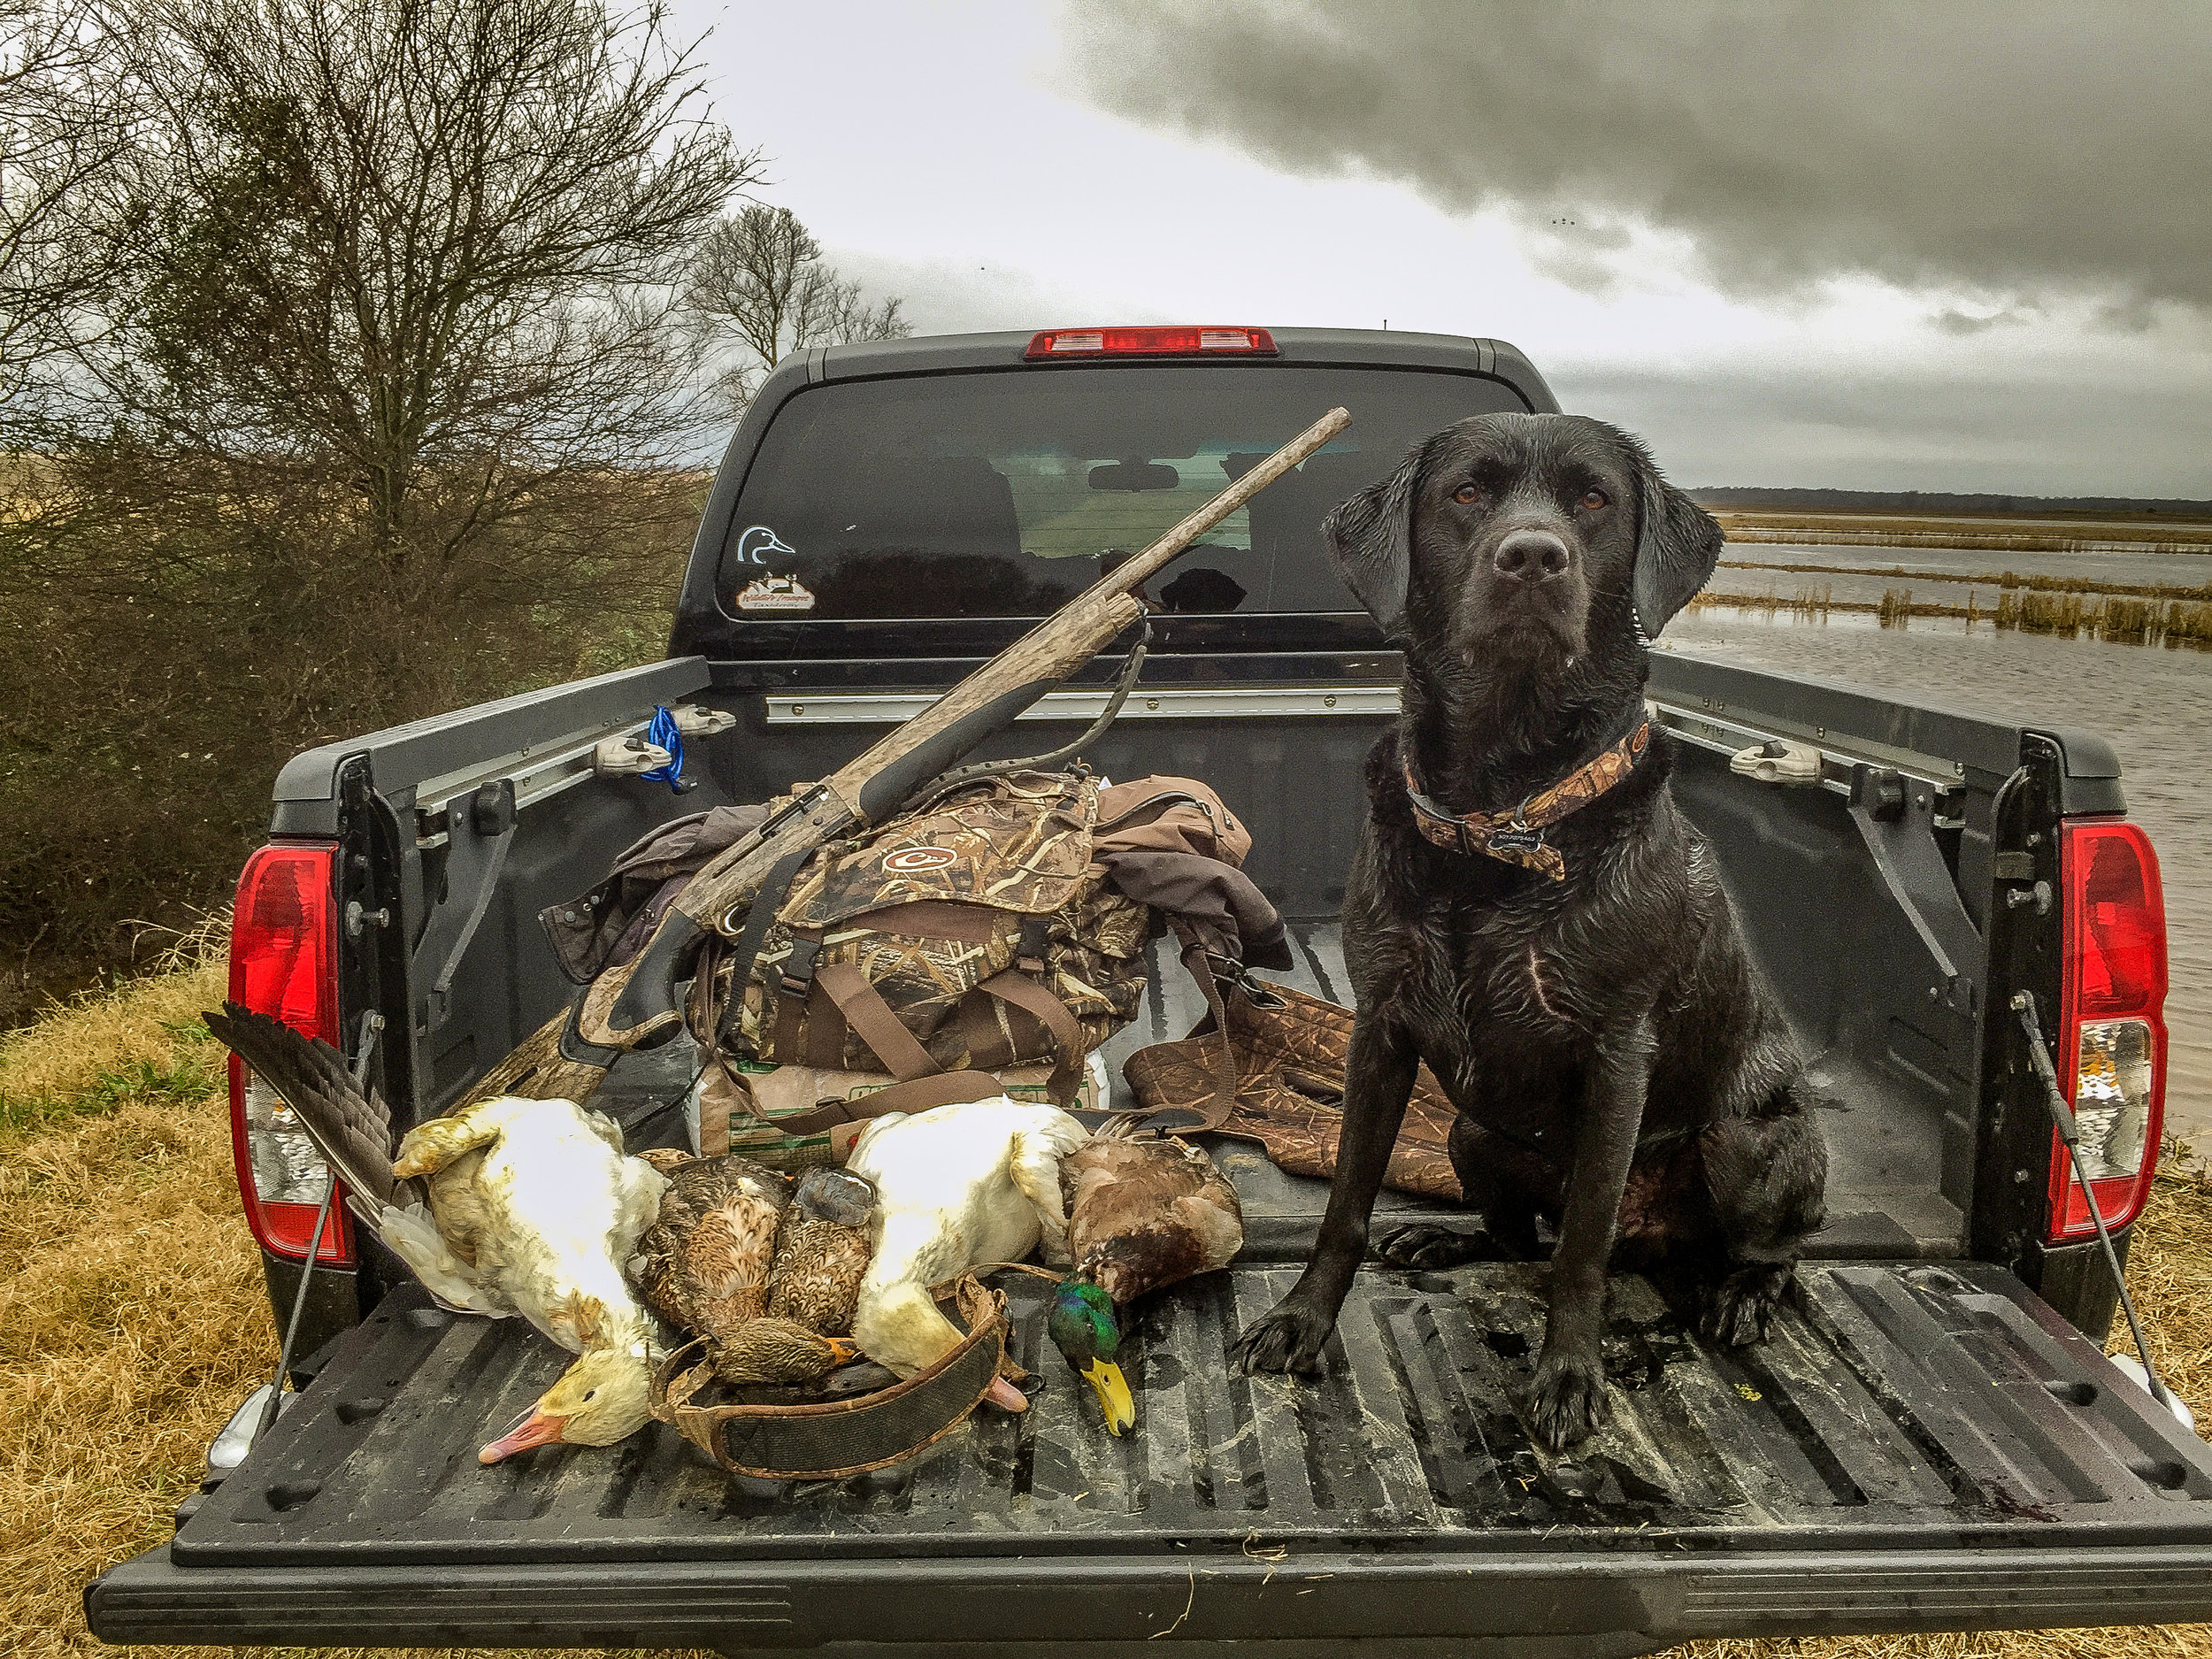 Black lab Jackson sits proud after a day's work fetching ducks.